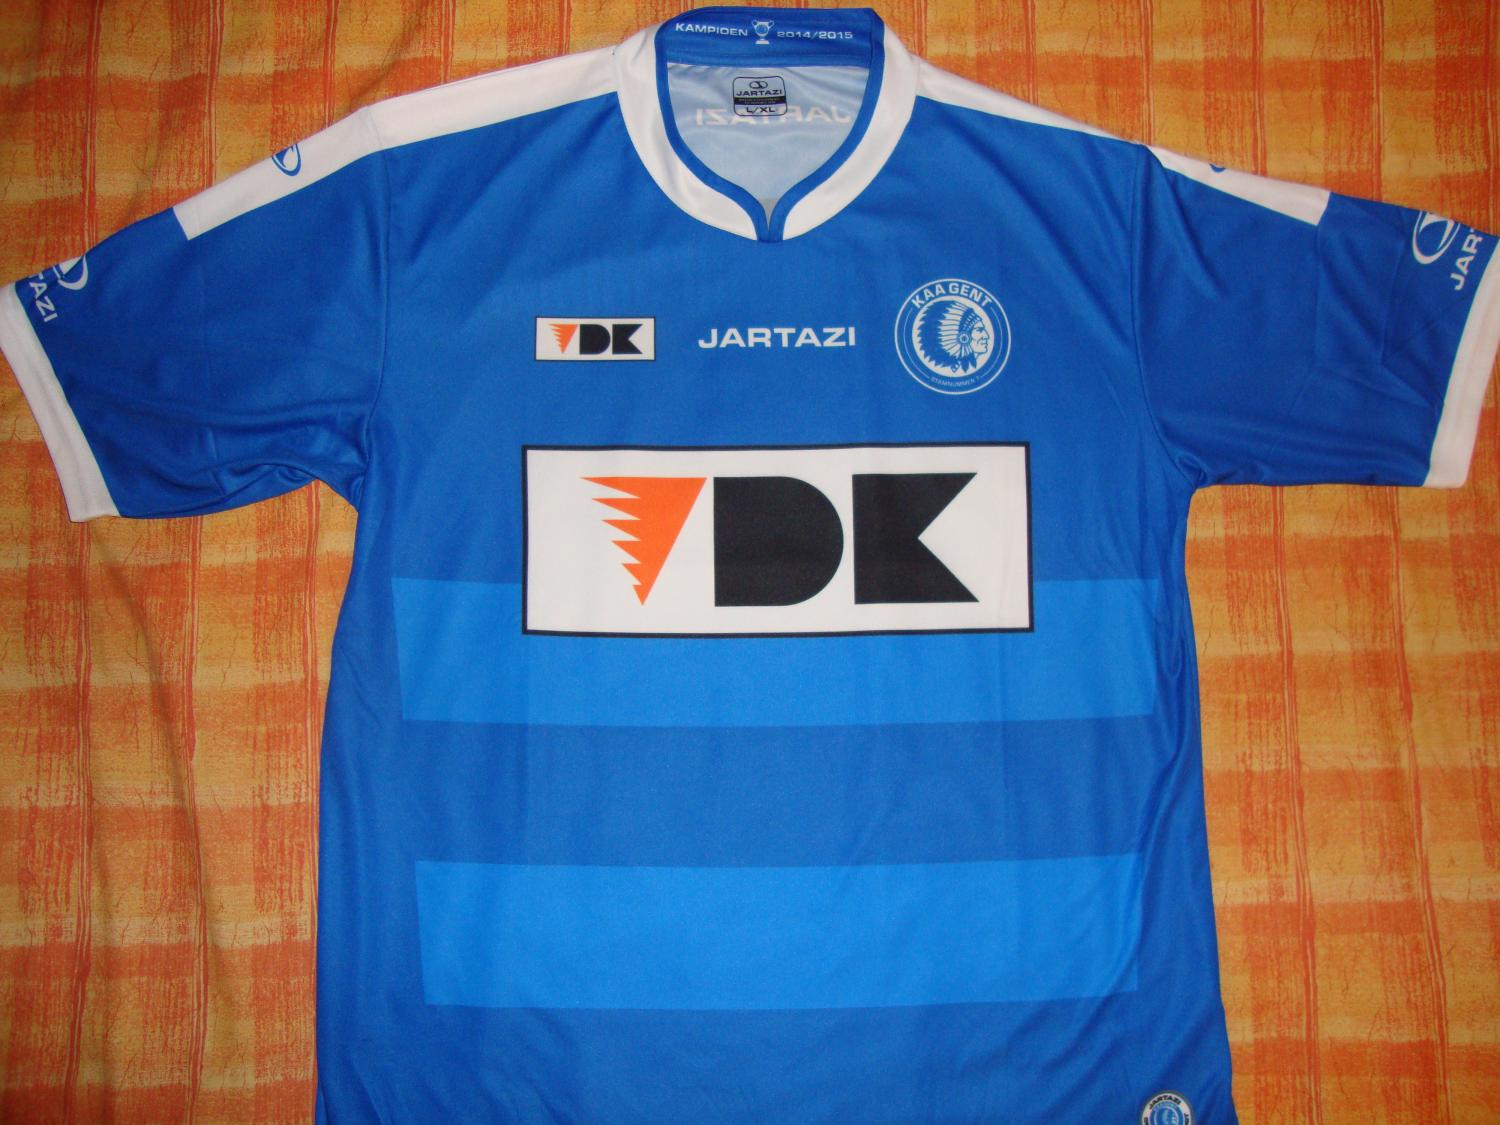 KAA Gent Home Maillot de foot 2015 - 2016.